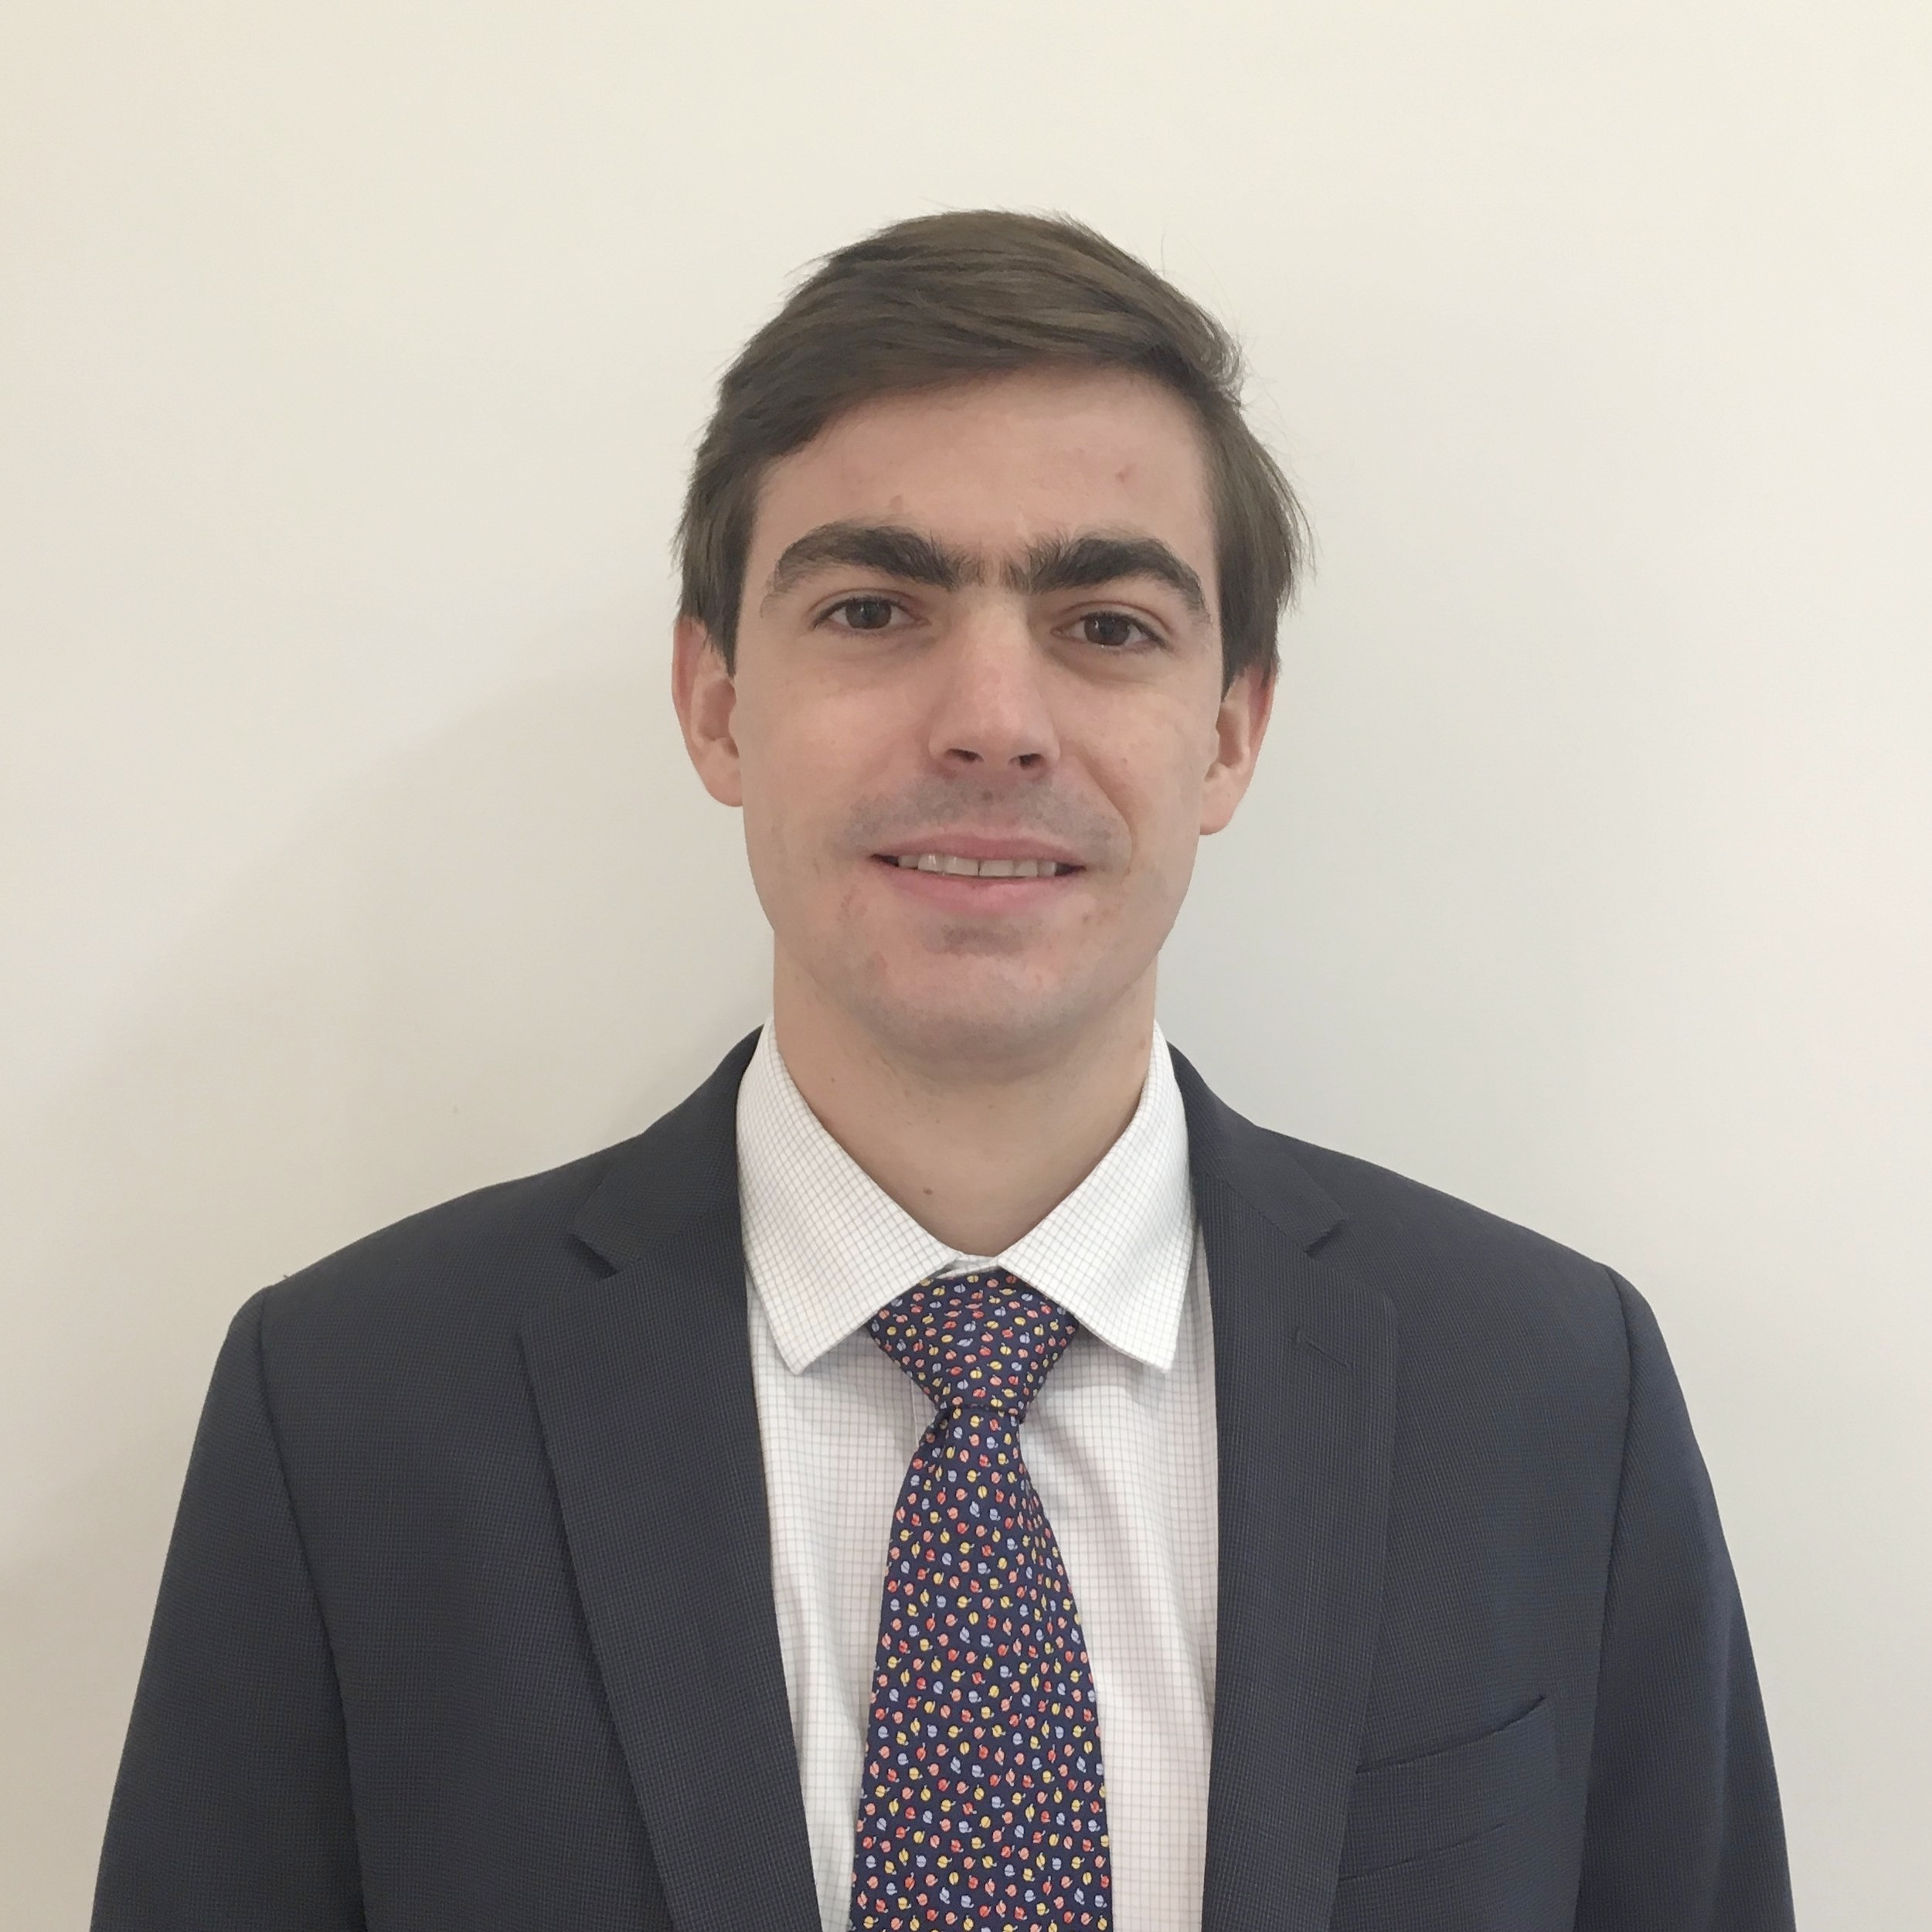 ALBERTO KURTEN   Associate    3 years of experience in market analysis and asset management   Former account executive at Solfin Valores; Trading Desk Trainee at Santander Asset Management; BS in Banking and Finance, Universidad Metropolitana; Master in Finance, IE Business School.